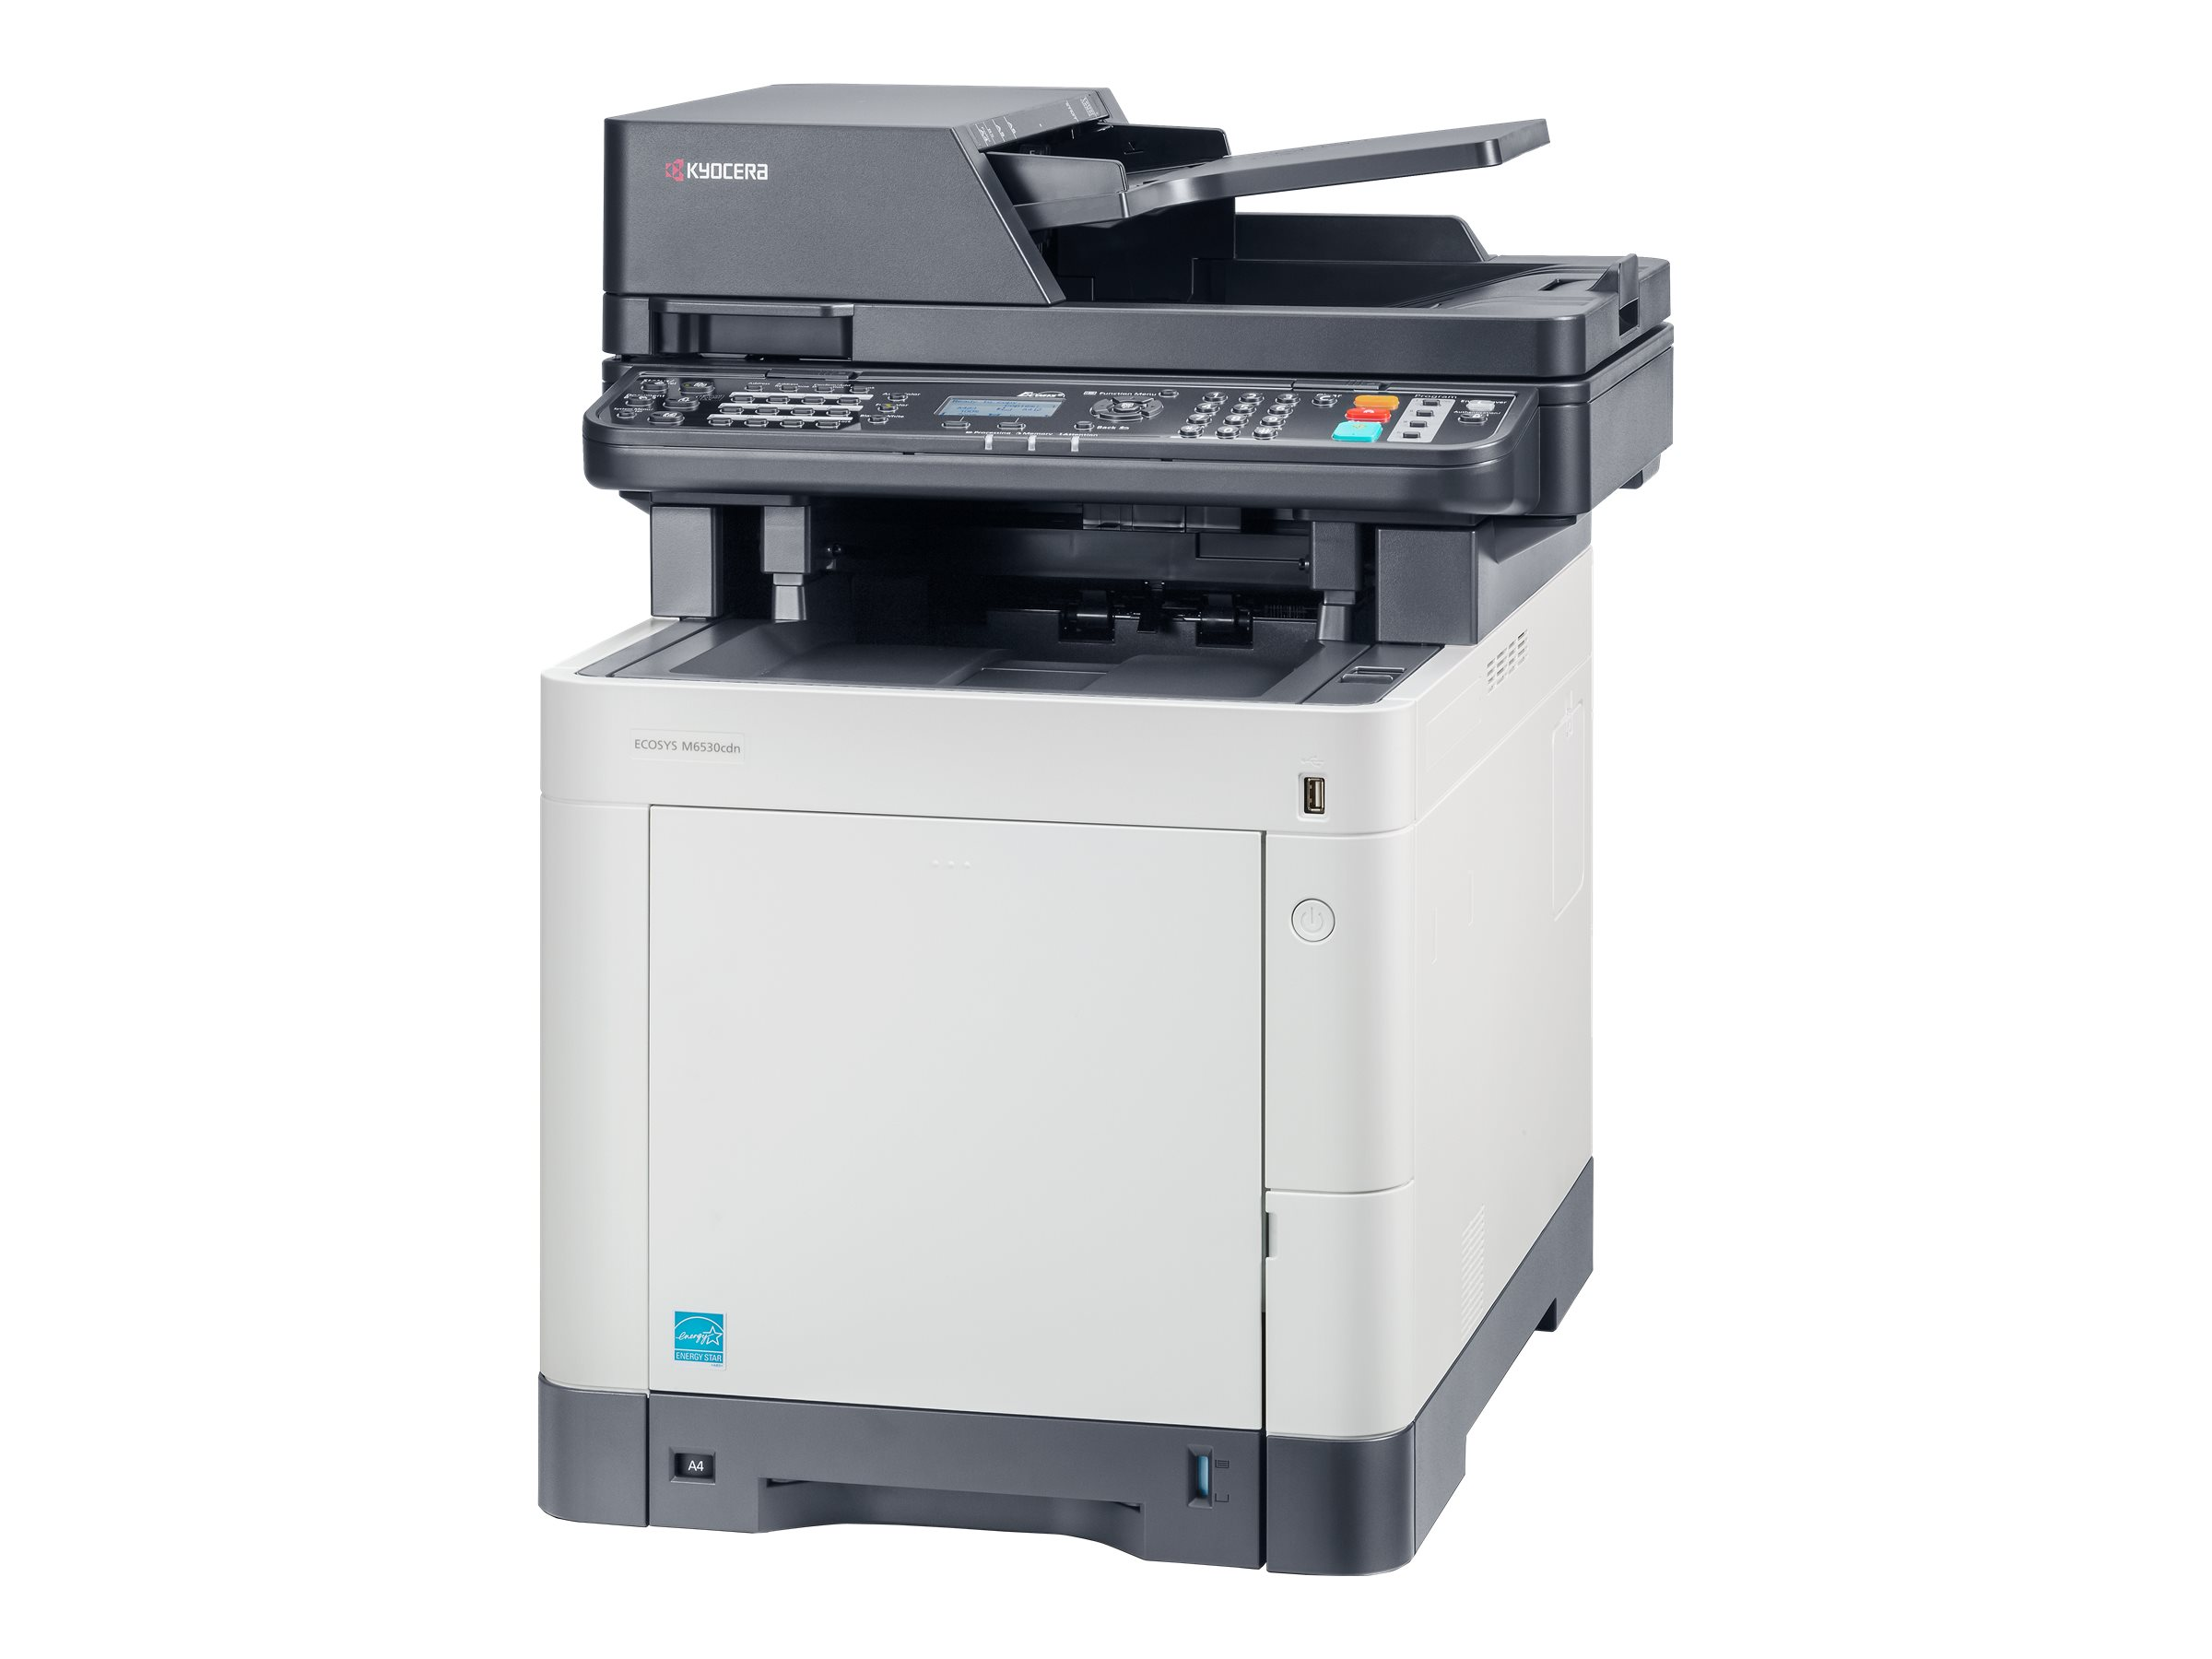 Kyocera ECOSYS M6530cdn/KL3 - Multifunktionsdrucker - Farbe - Laser - Legal (216 x 356 mm)/A4 (210 x 297 mm) (Original) - A4/Legal (Medien)